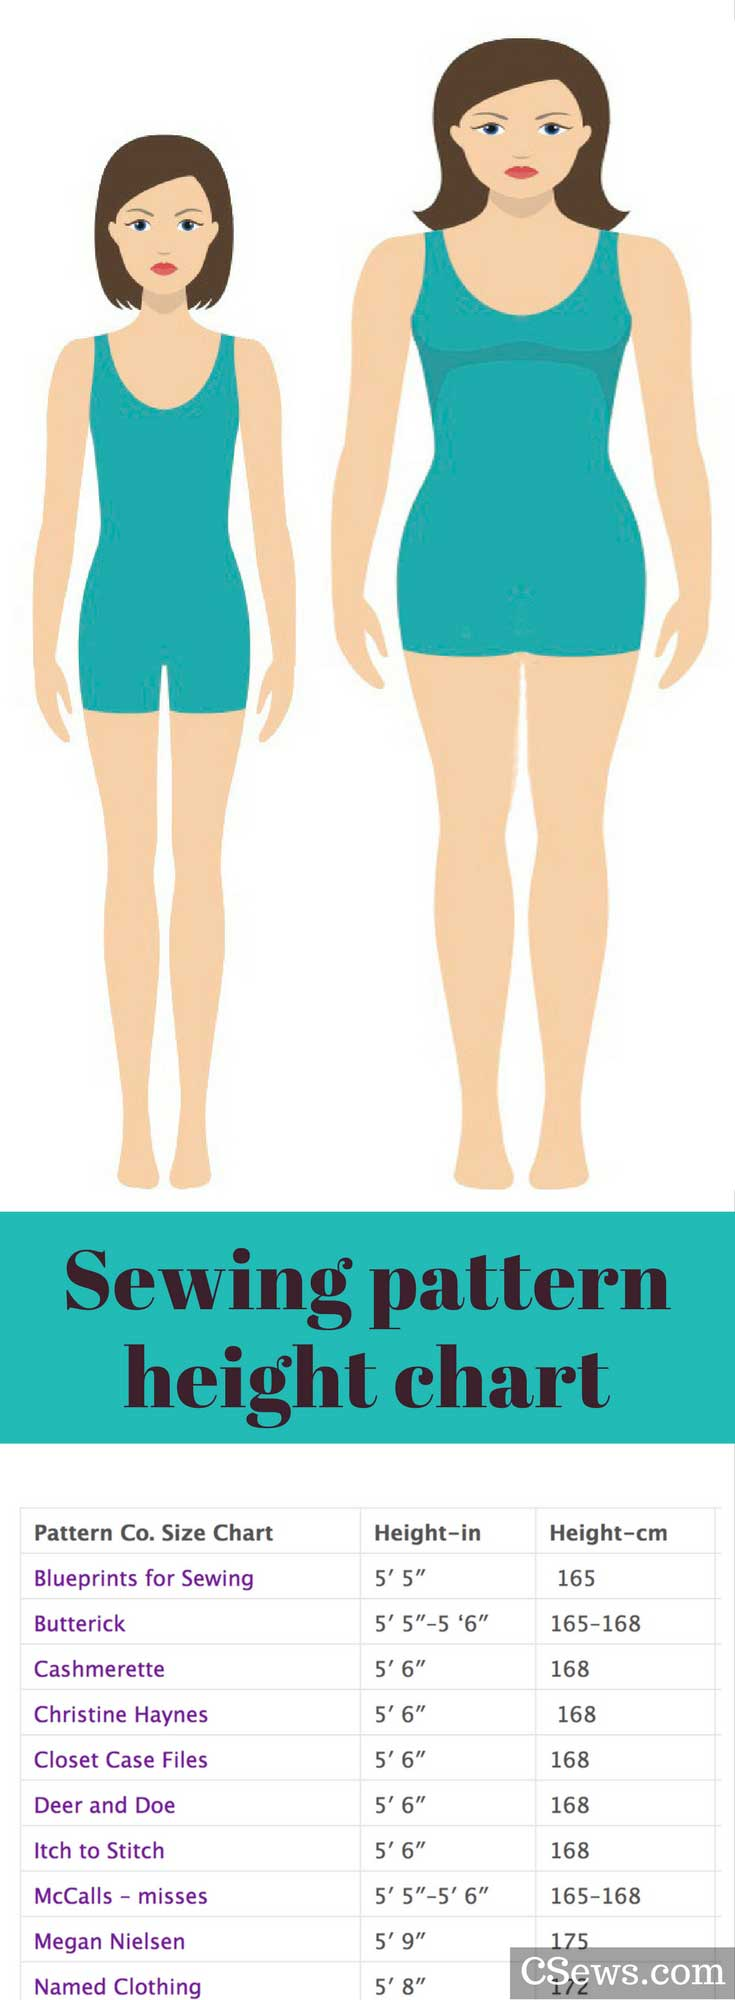 Sewing pattern height - chart listing Big Four and indie pattern heights (Christine Haynes, Closet Case Files, Deer and Doe, Named, Megan Nielsen, Papercut, Style Arc, and more)